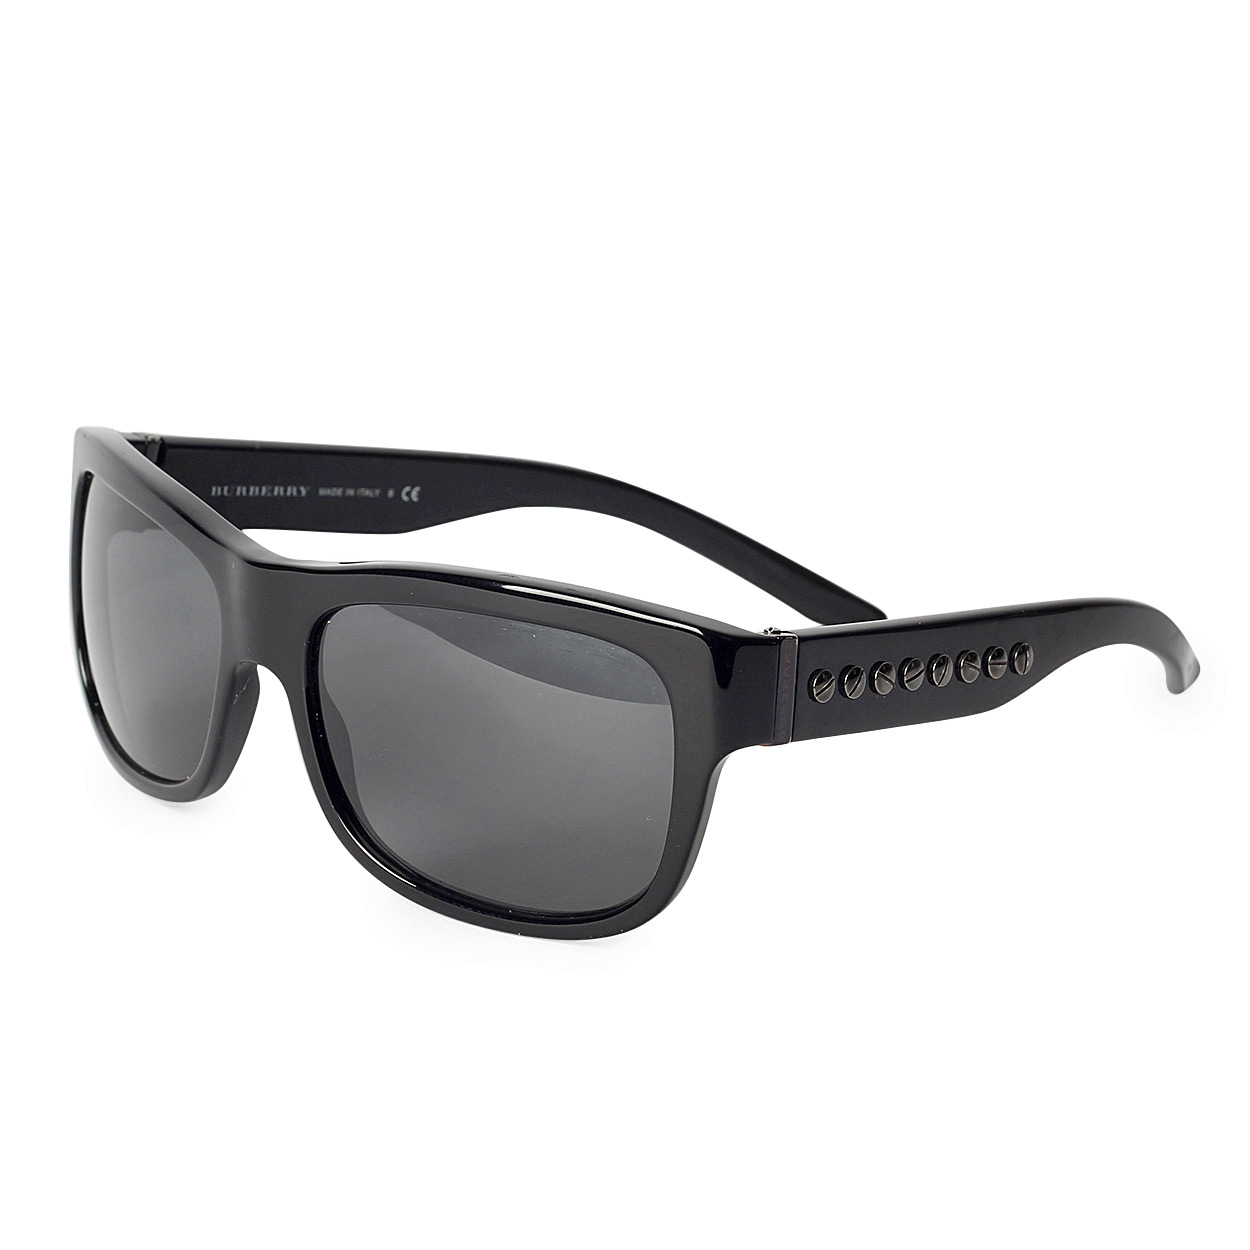 Glasses Small Frame : BURBERRY Black Small-frame Sunglasses B4094 - Luxity